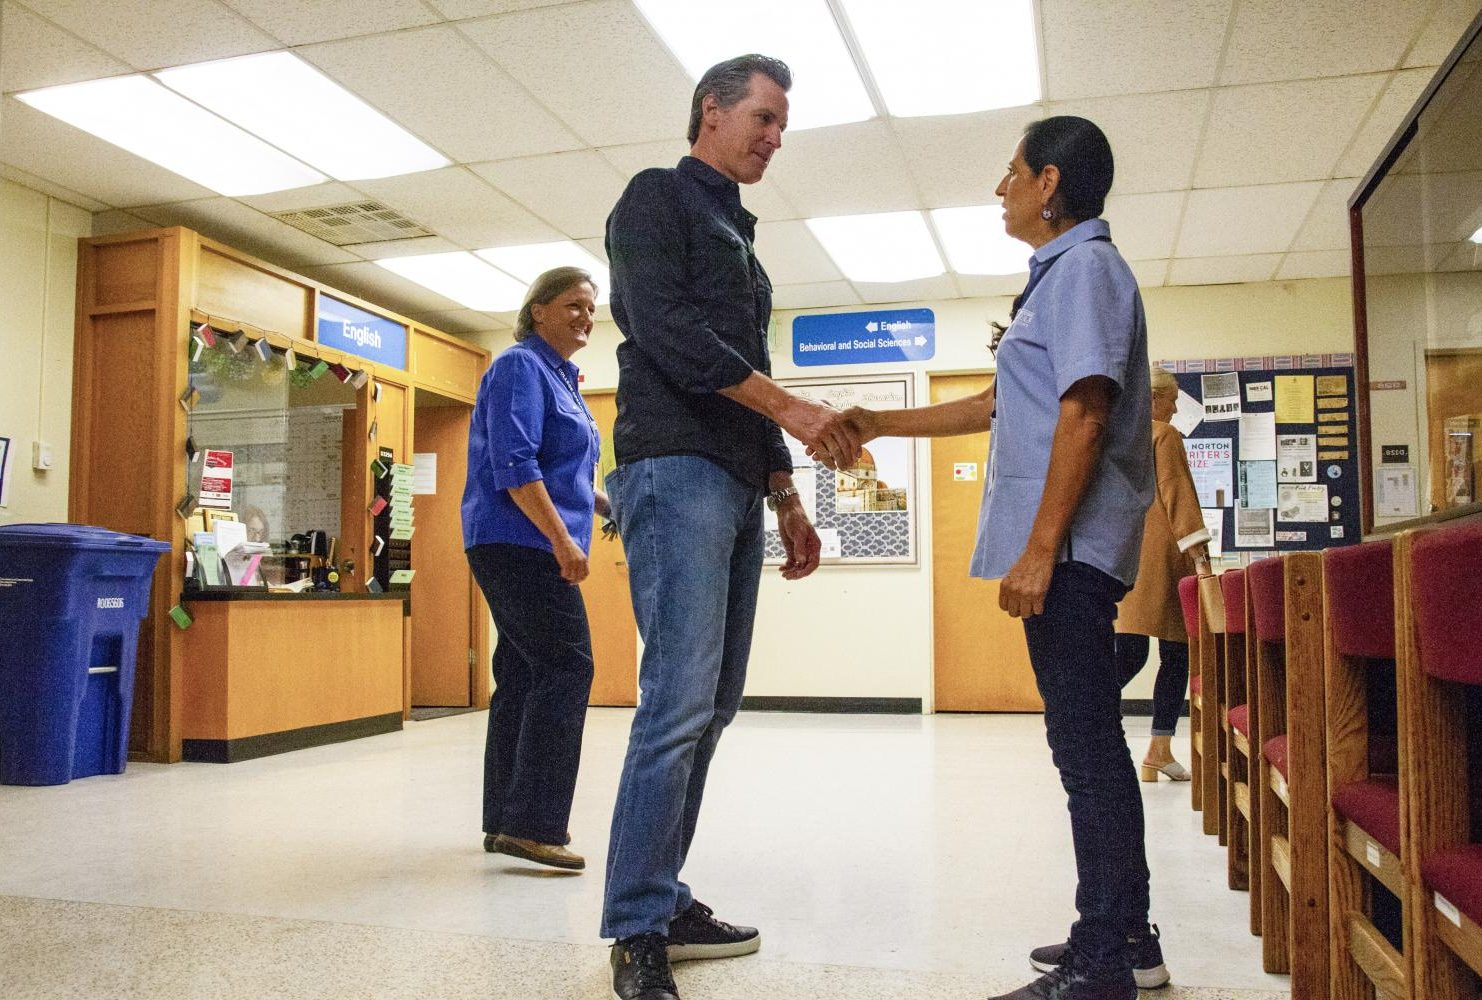 Gavin Newsom meets American River College custodian Maria Arambula on the third floor of Davies Hall at American River College for International Workers' Day May 1, 2019. (Photo by Patrick Hyun Wilson)